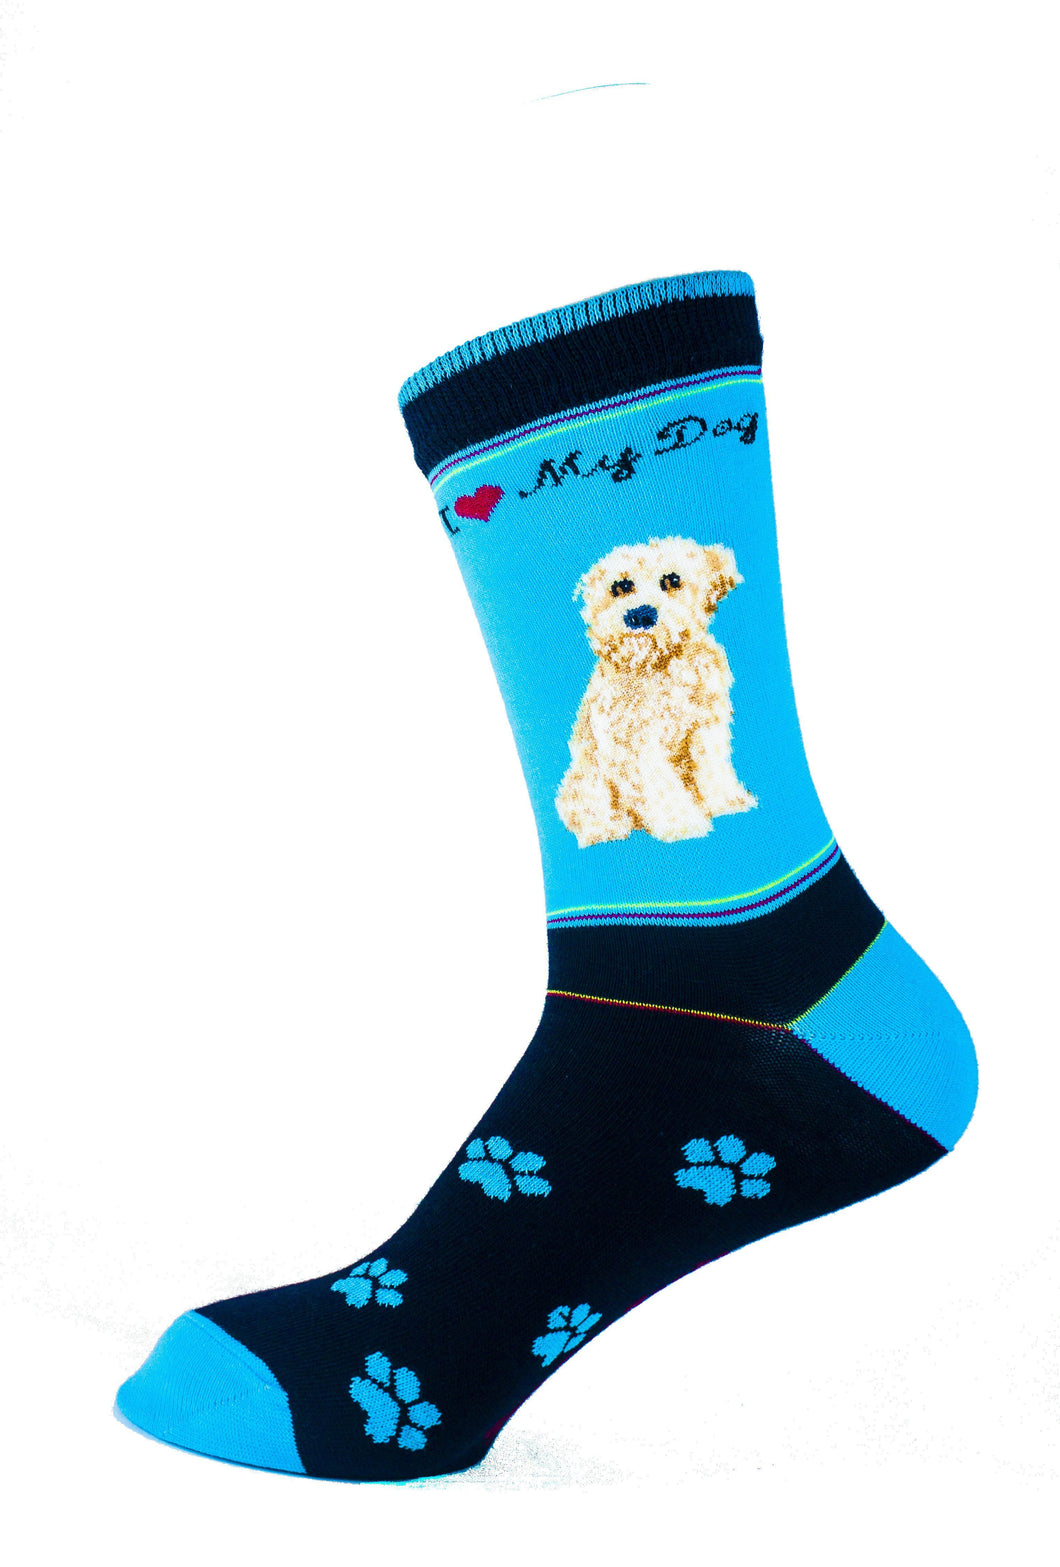 Wheaten Dog Socks Signature - samnoveltysocks.com